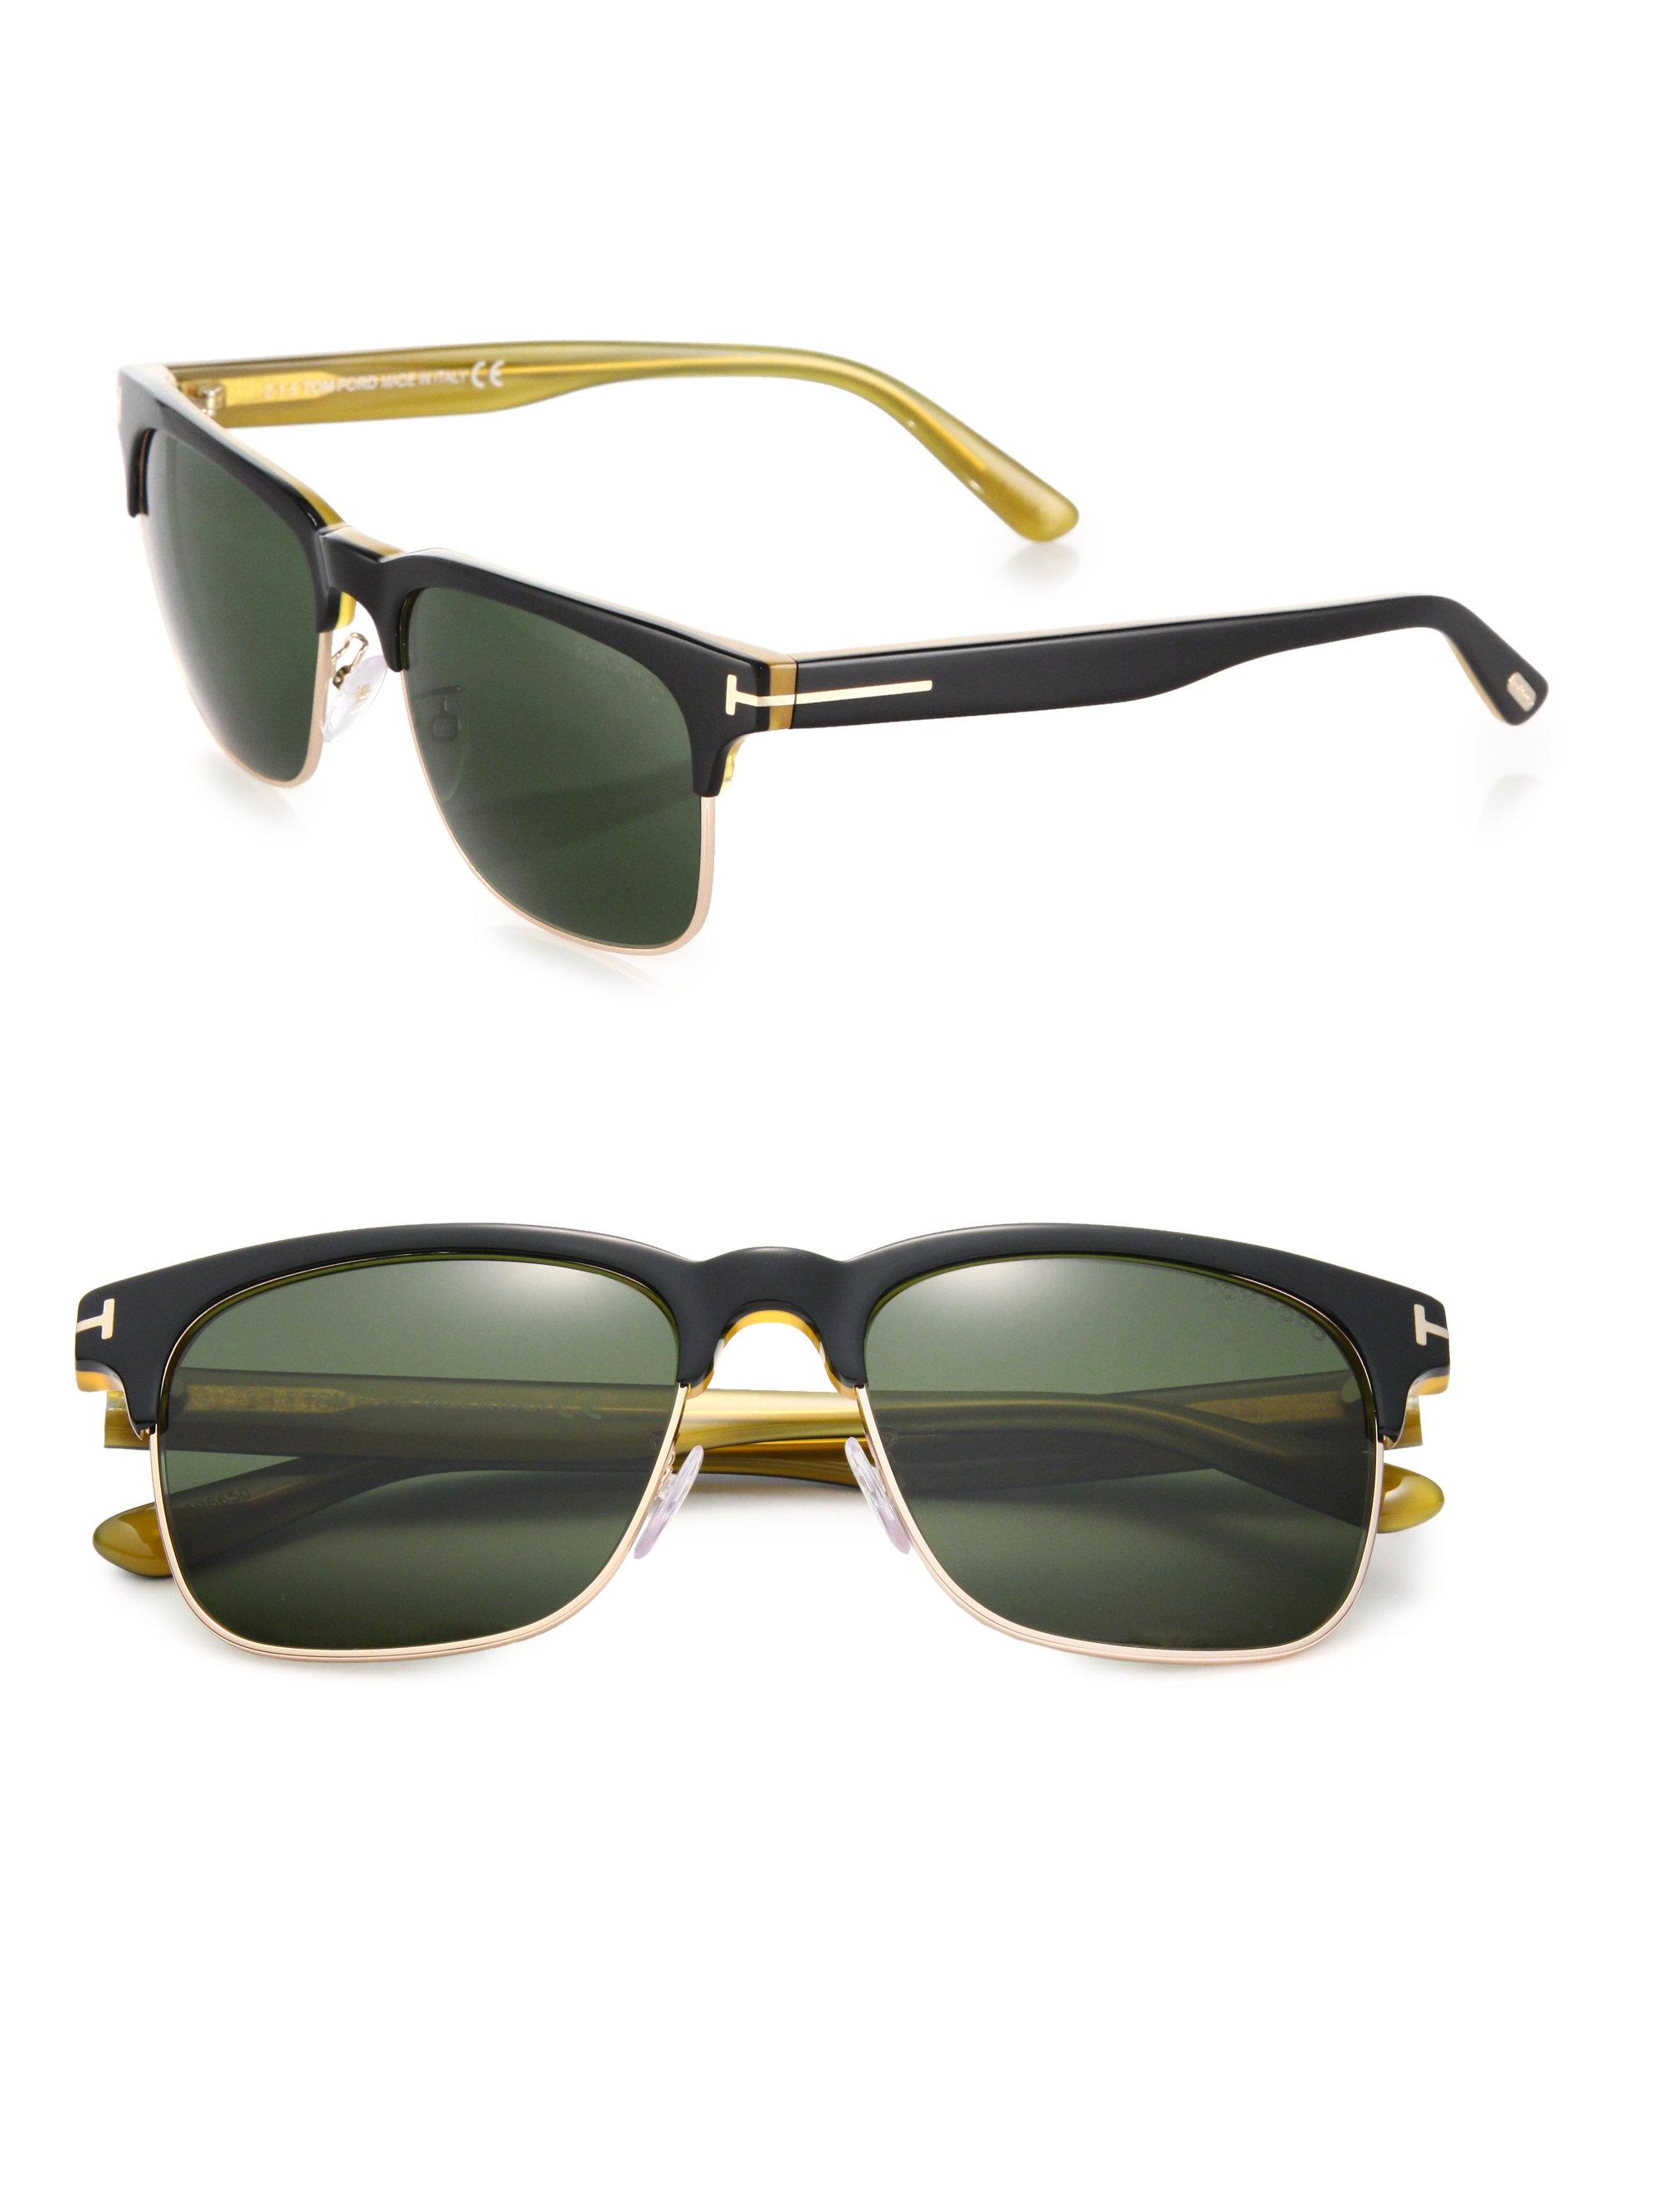 8a4f27fb203 Lyst - Tom Ford Louis 55mm Square Sunglasses in Black for Men